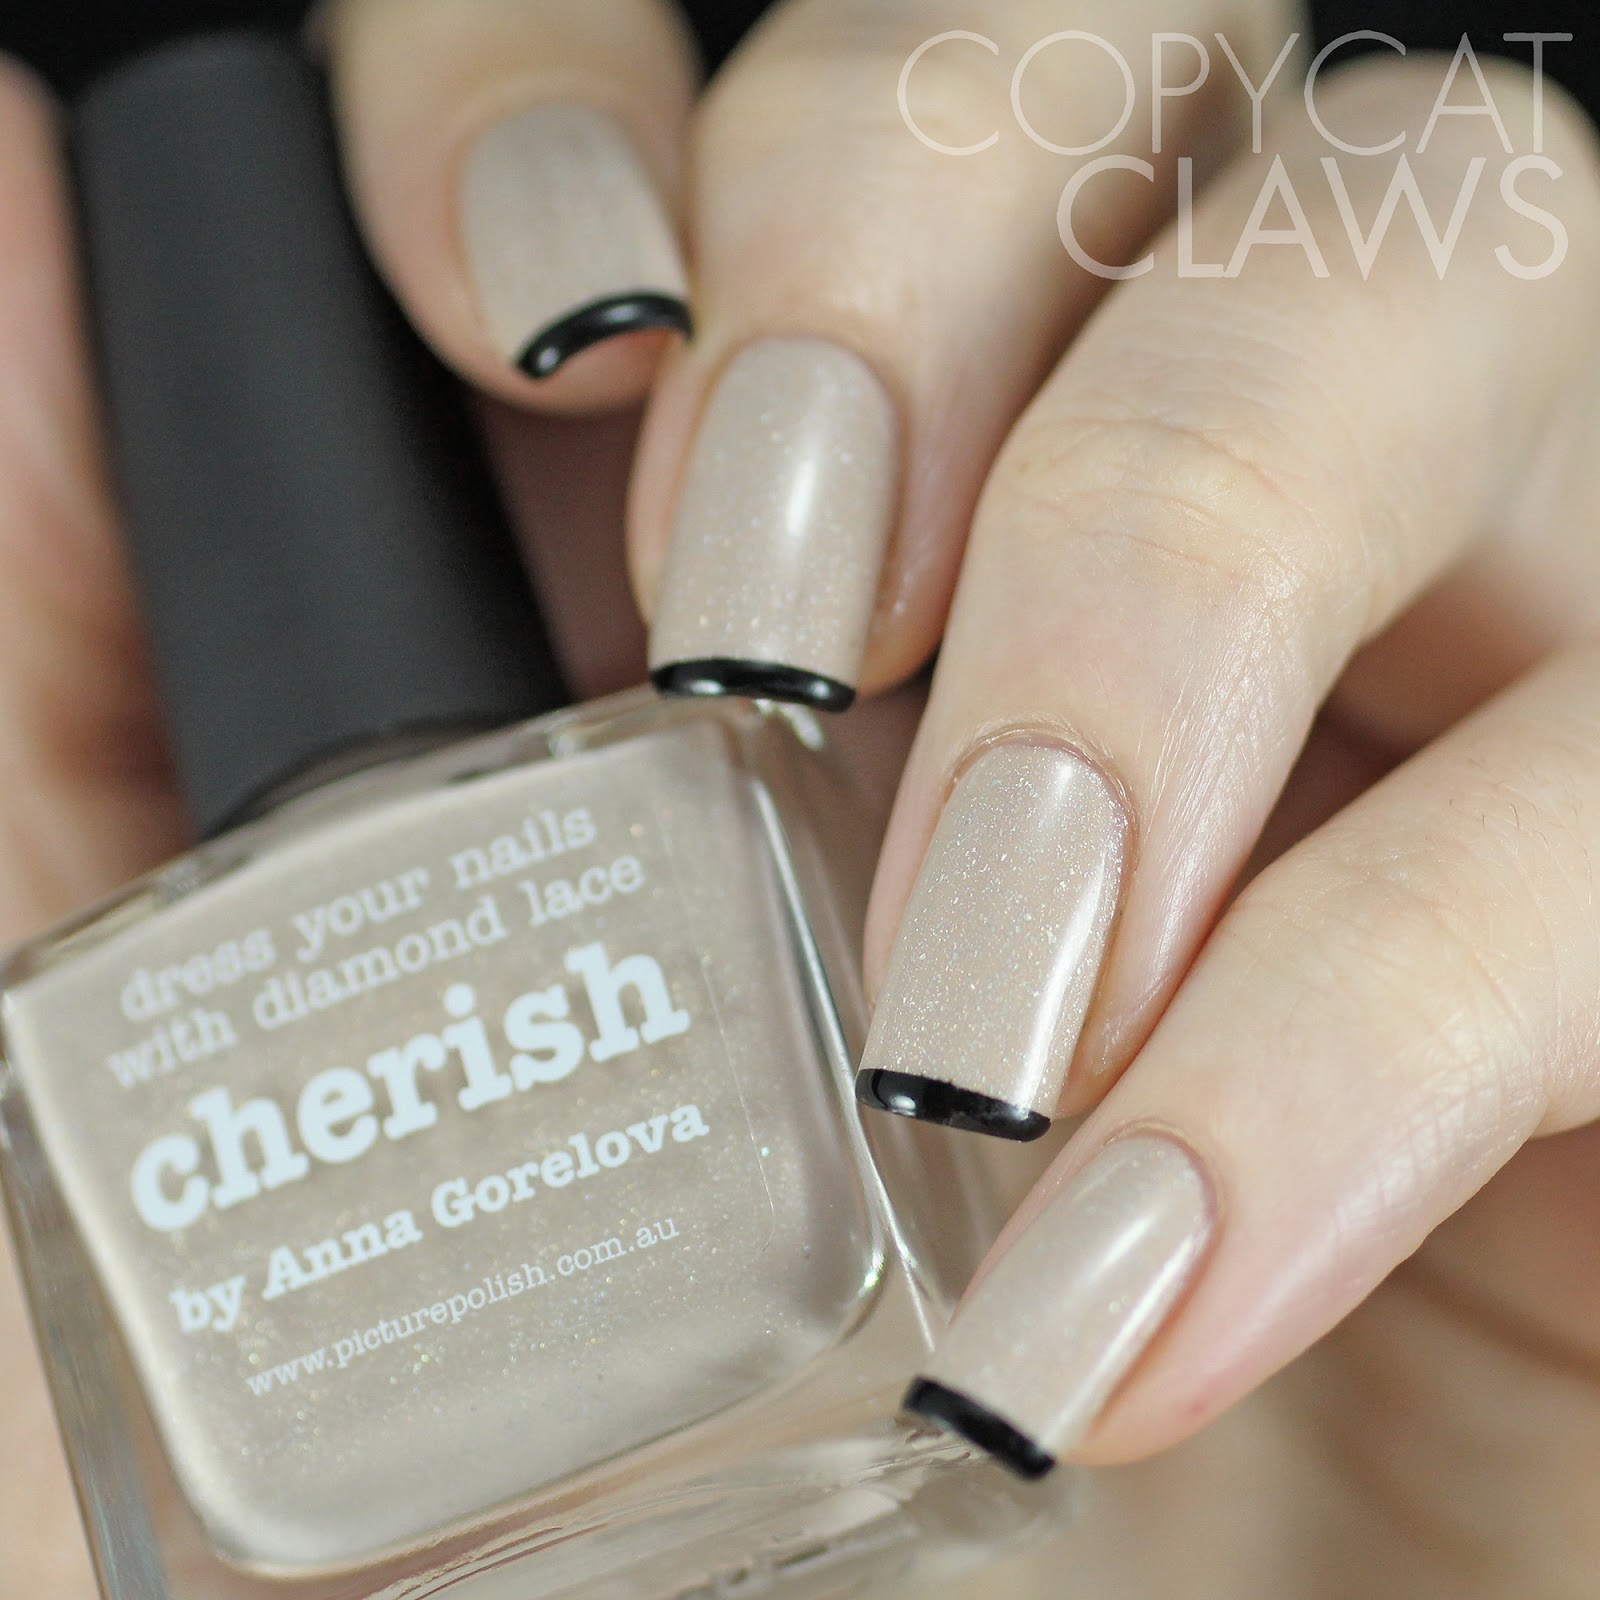 Copycat Claws: Picture Polish Cherish with Fine French Tip